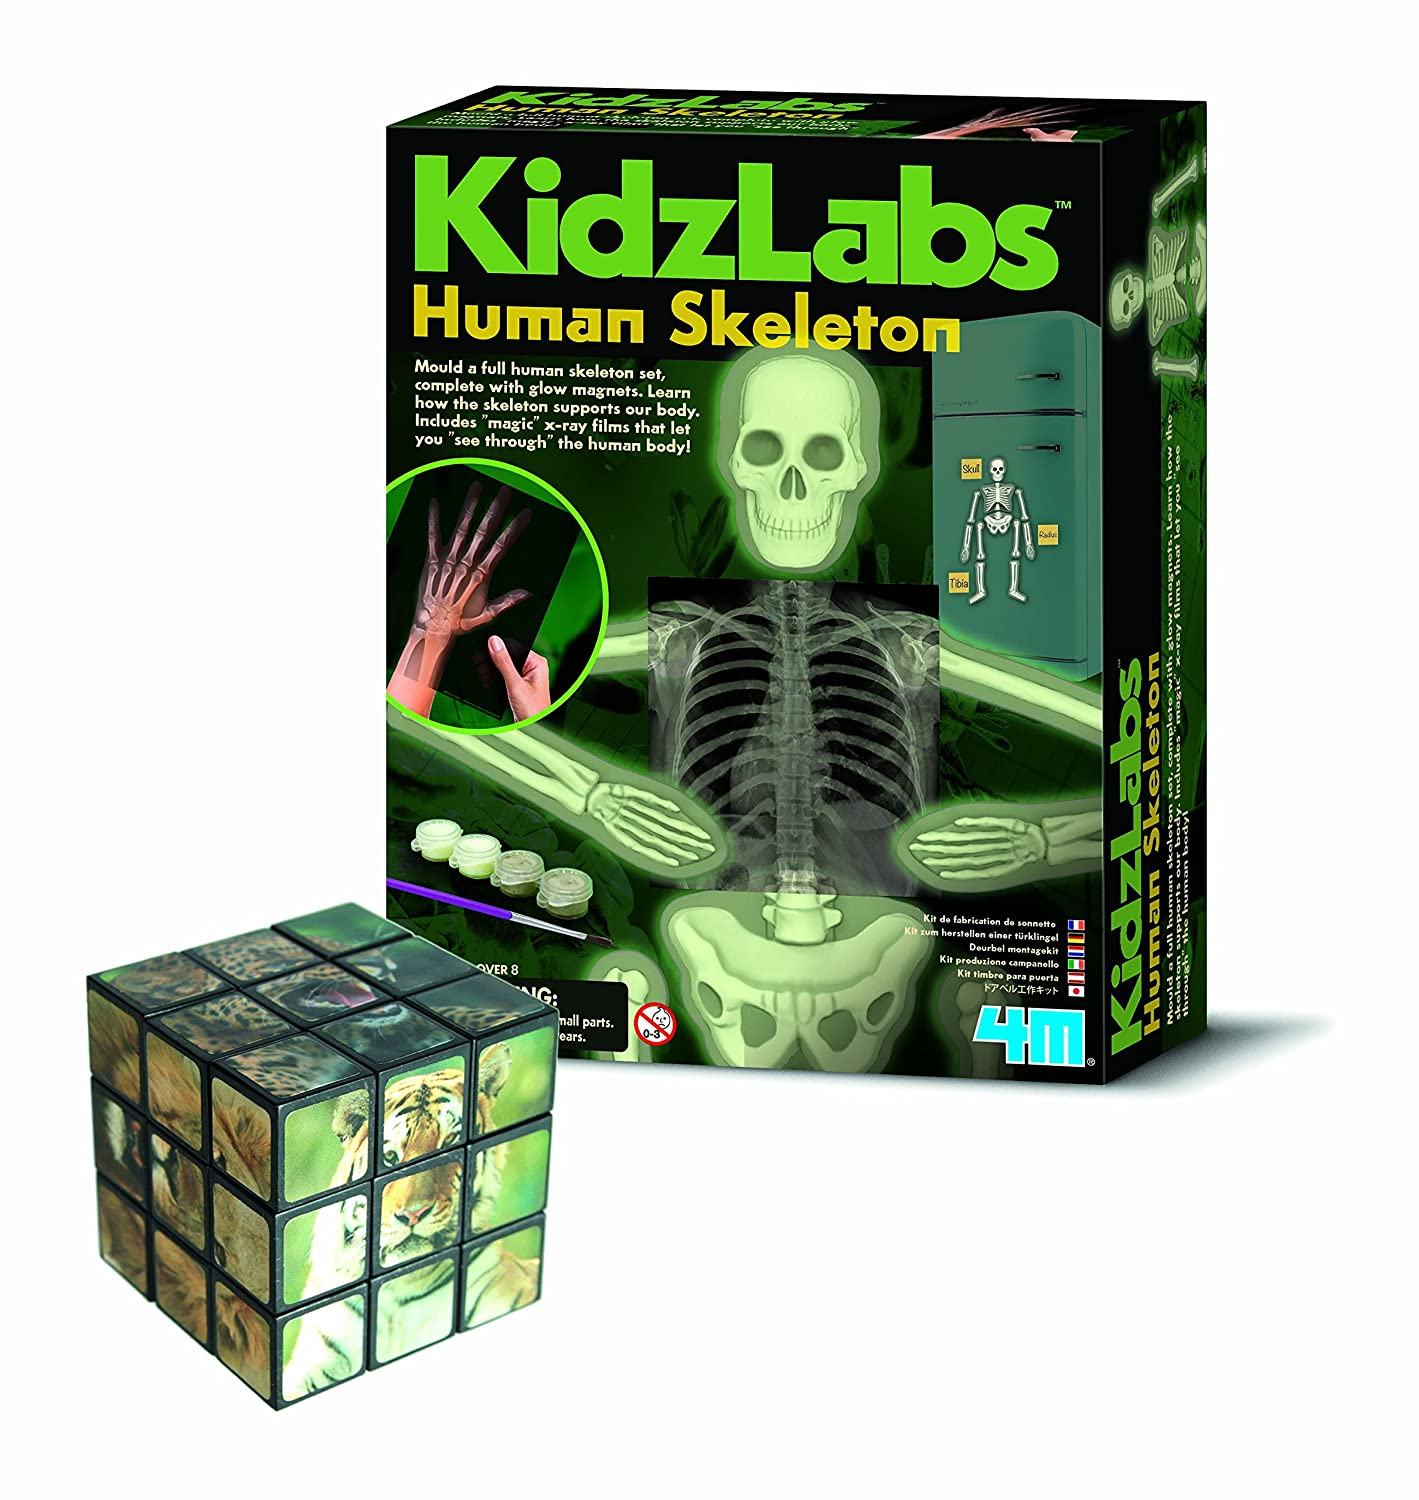 First Port of Call for Gifts Teach Myself Biology Skeleton - Comes with a Fun Wild Animal Magic Cube Inspirational Gifts